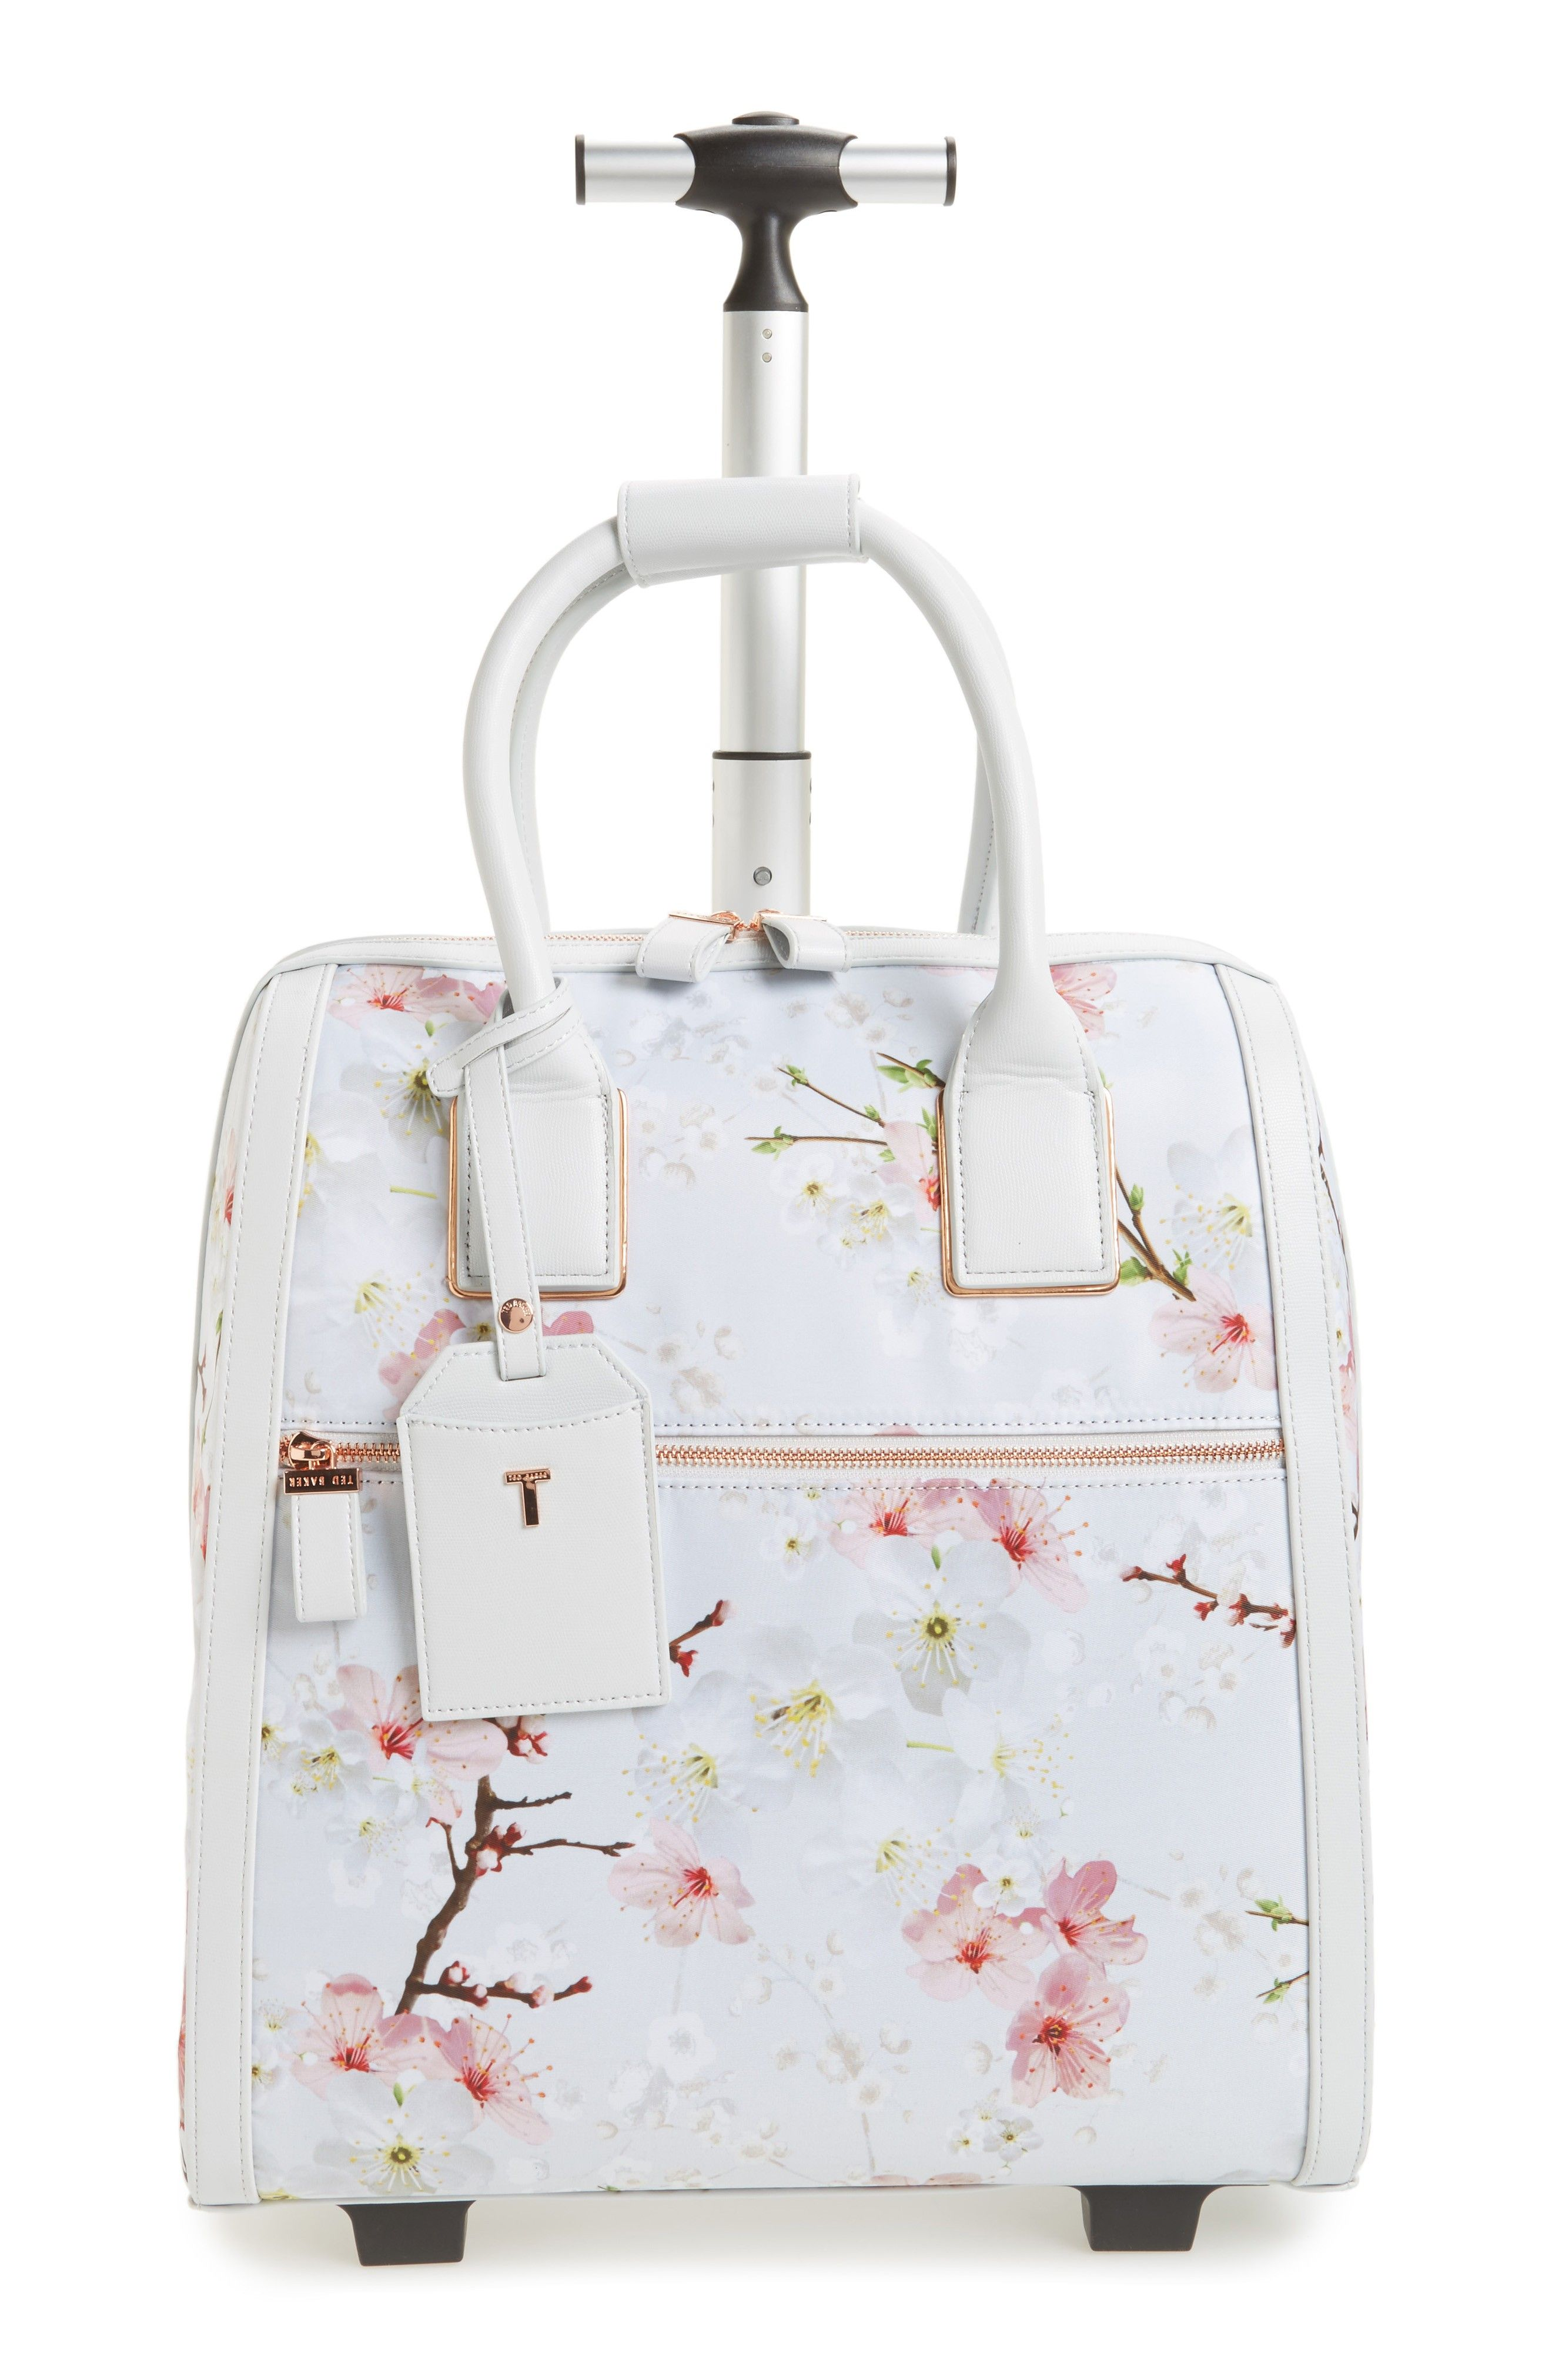 7 Cute Luggage Pieces To Travel With N Class